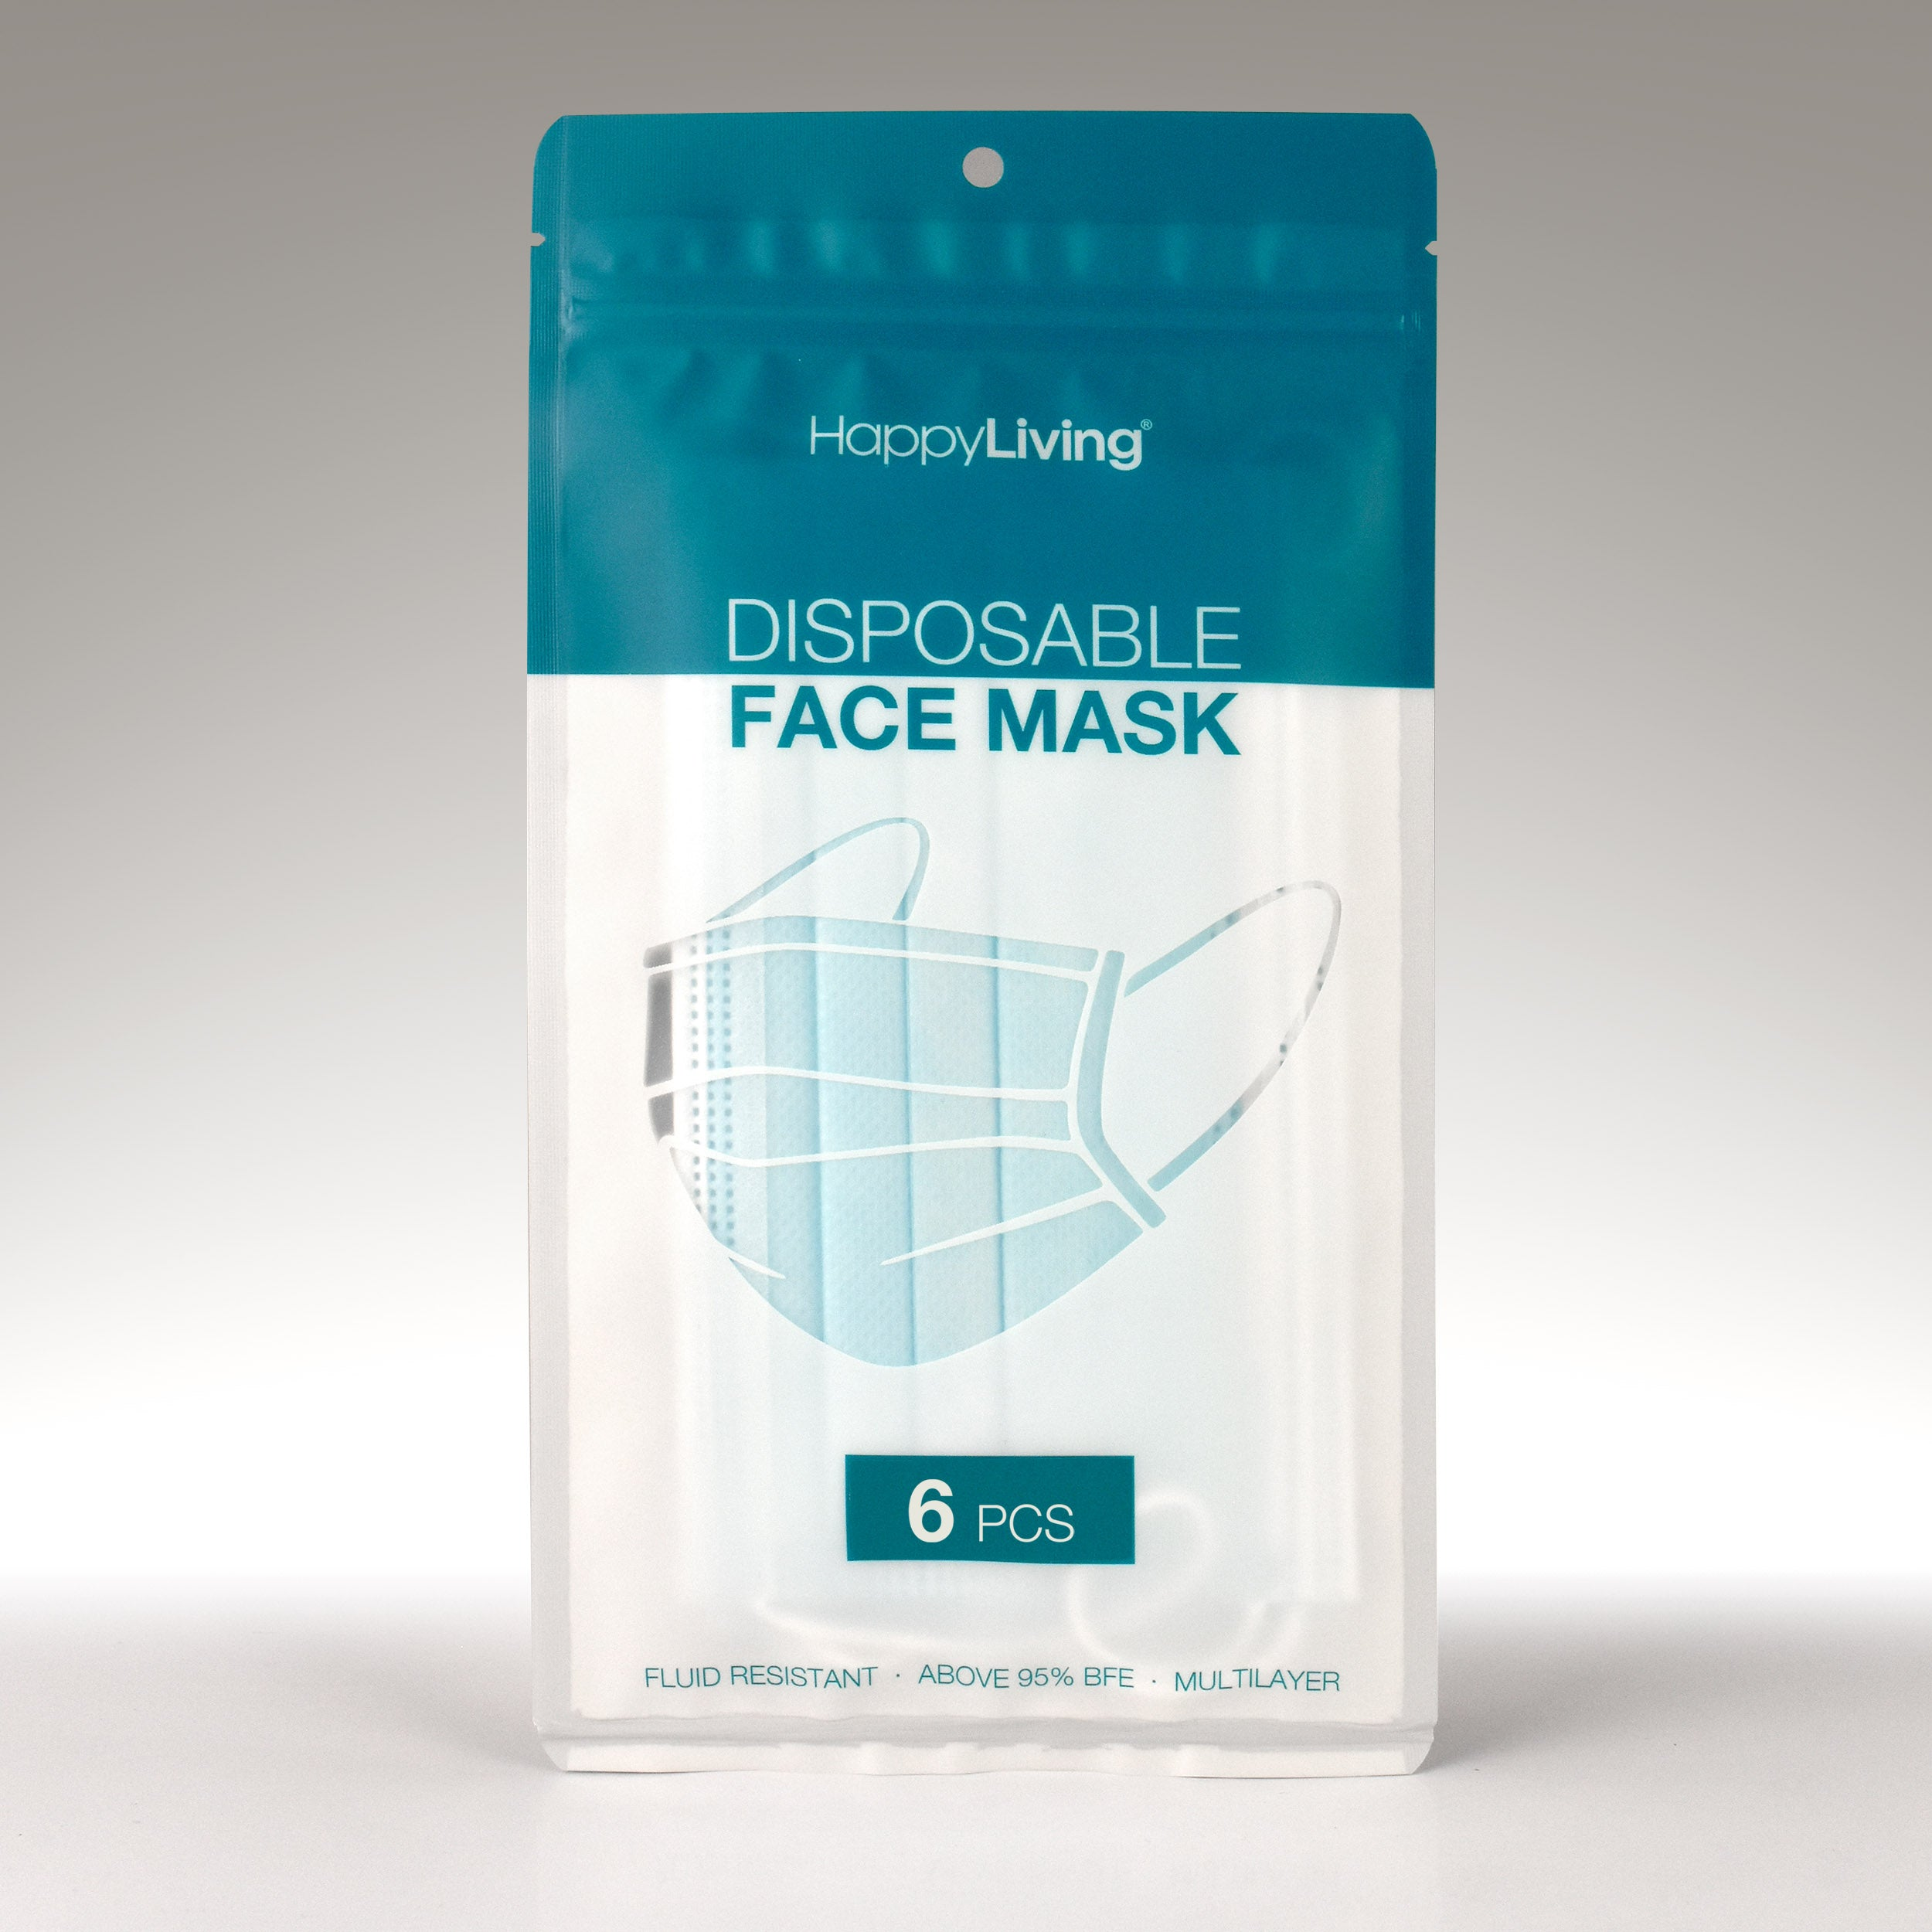 An image of a pack of 6 disposable face mask.